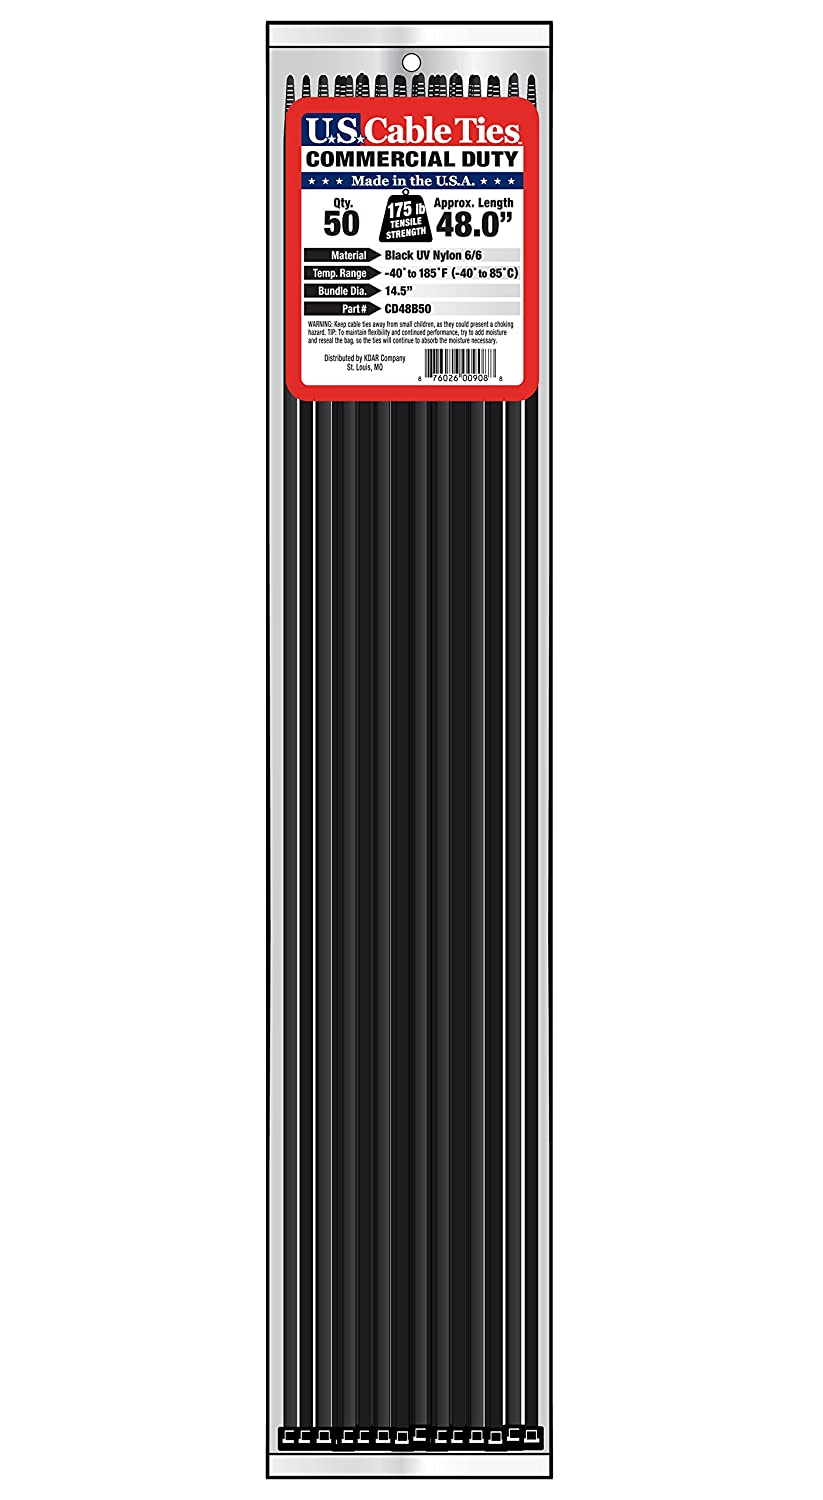 UV Black 25-Pack Hot Max US Cable Ties CD24B25 24-Inch Commercial Duty Cable Ties